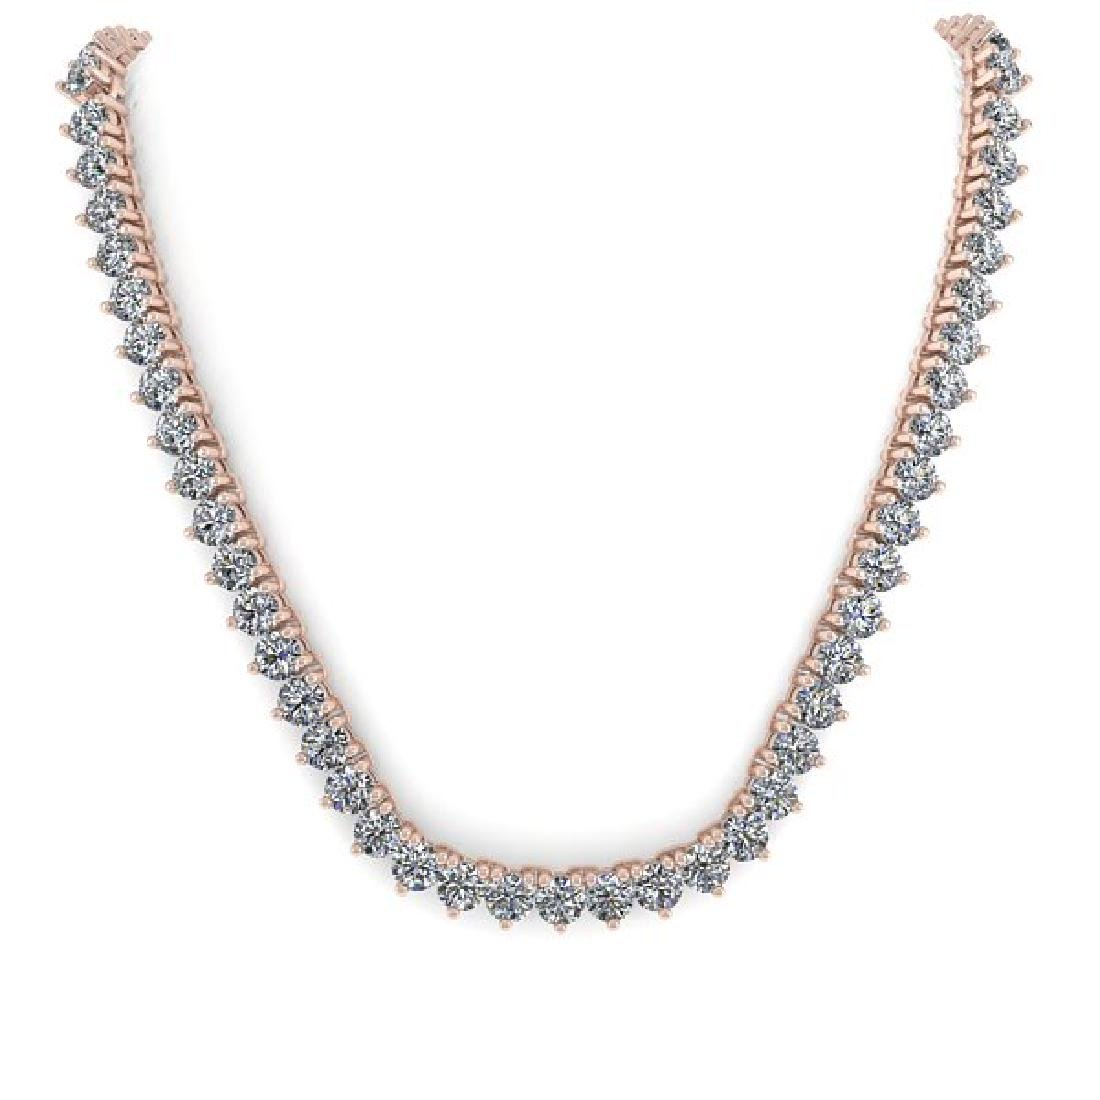 48 CTW Solitaire SI Diamond Necklace 18K Rose Gold - 2